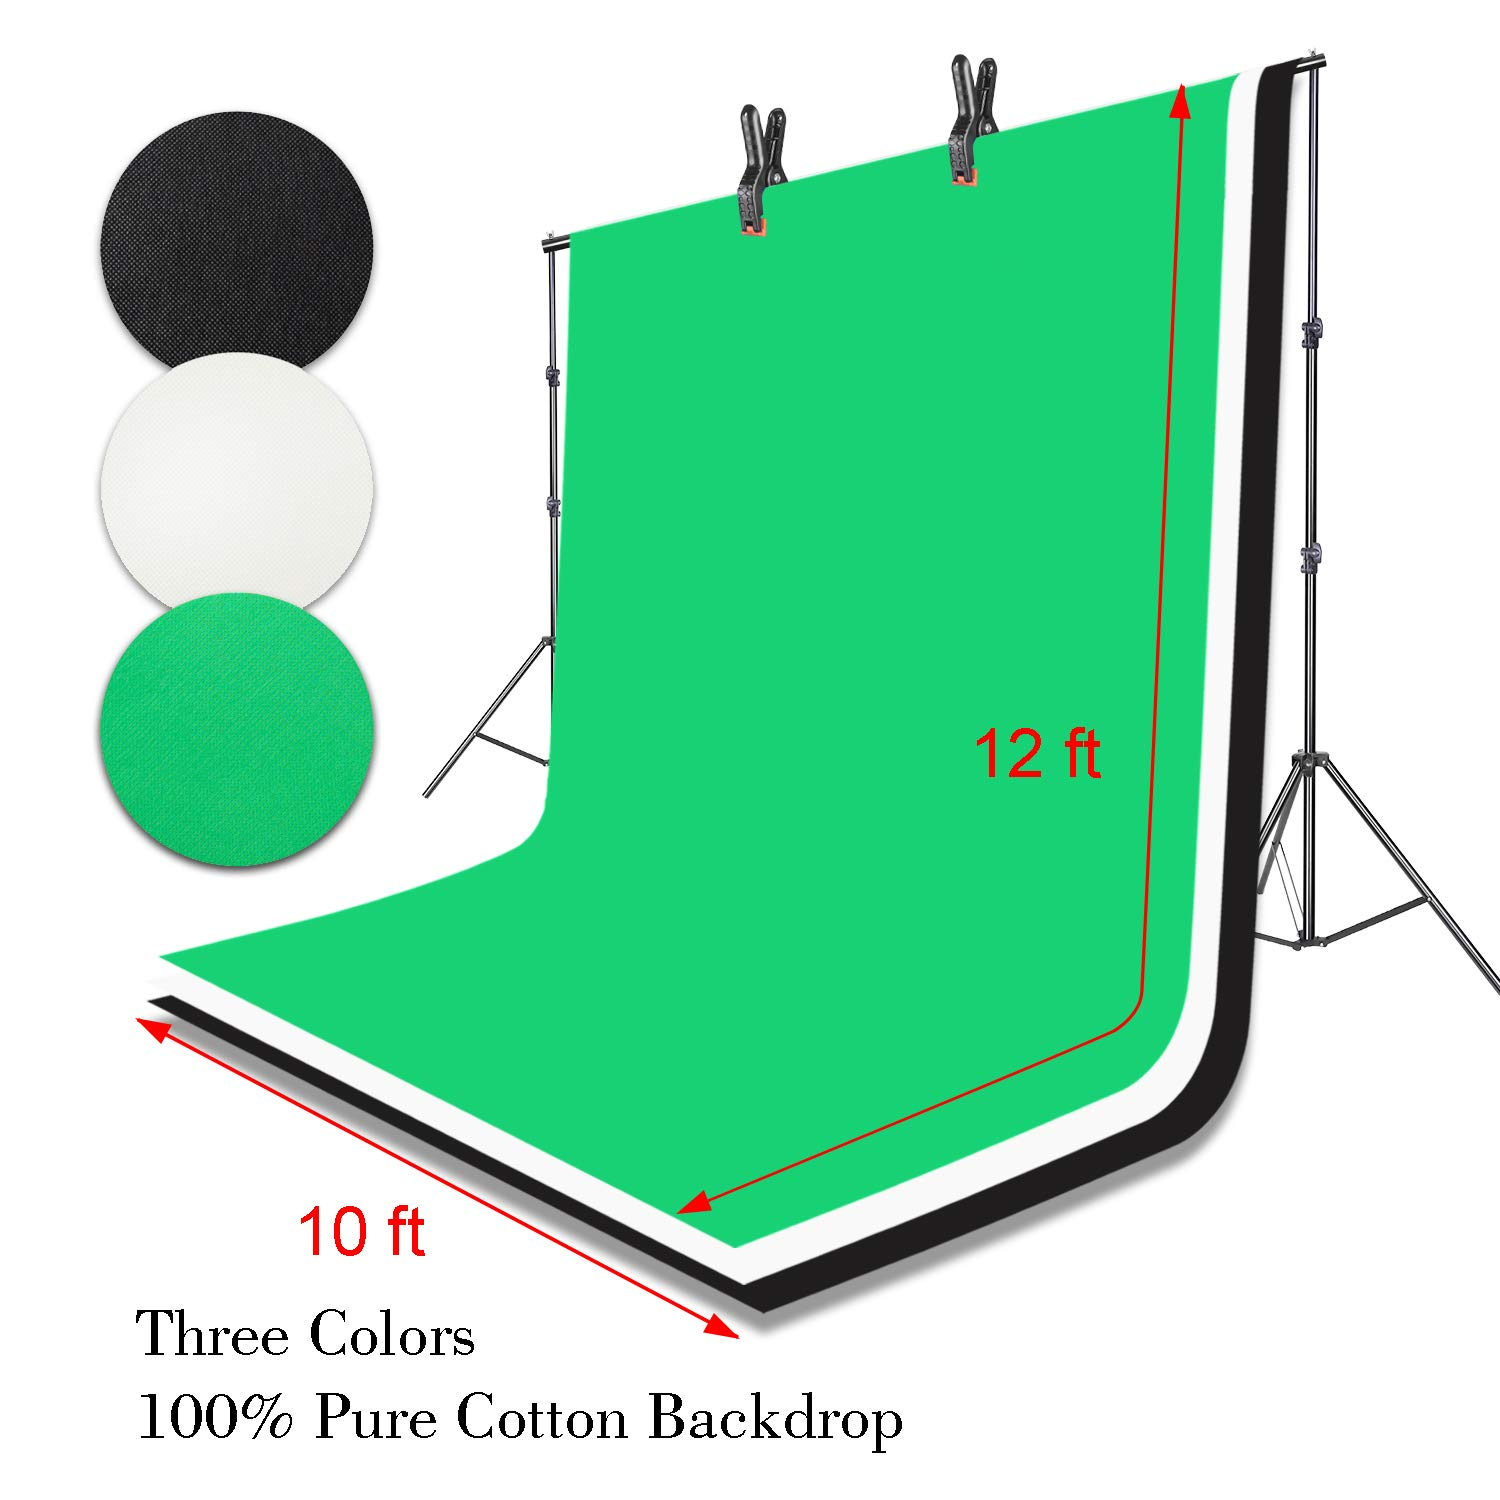 Emart Portable Photo Studio 9.2x10ft Background Support System with 3 Color Muslin Backdrops (Green Black White, 10ft X 12ft) for Portrait, Product Photography and Video Shooting by EMART (Image #5)